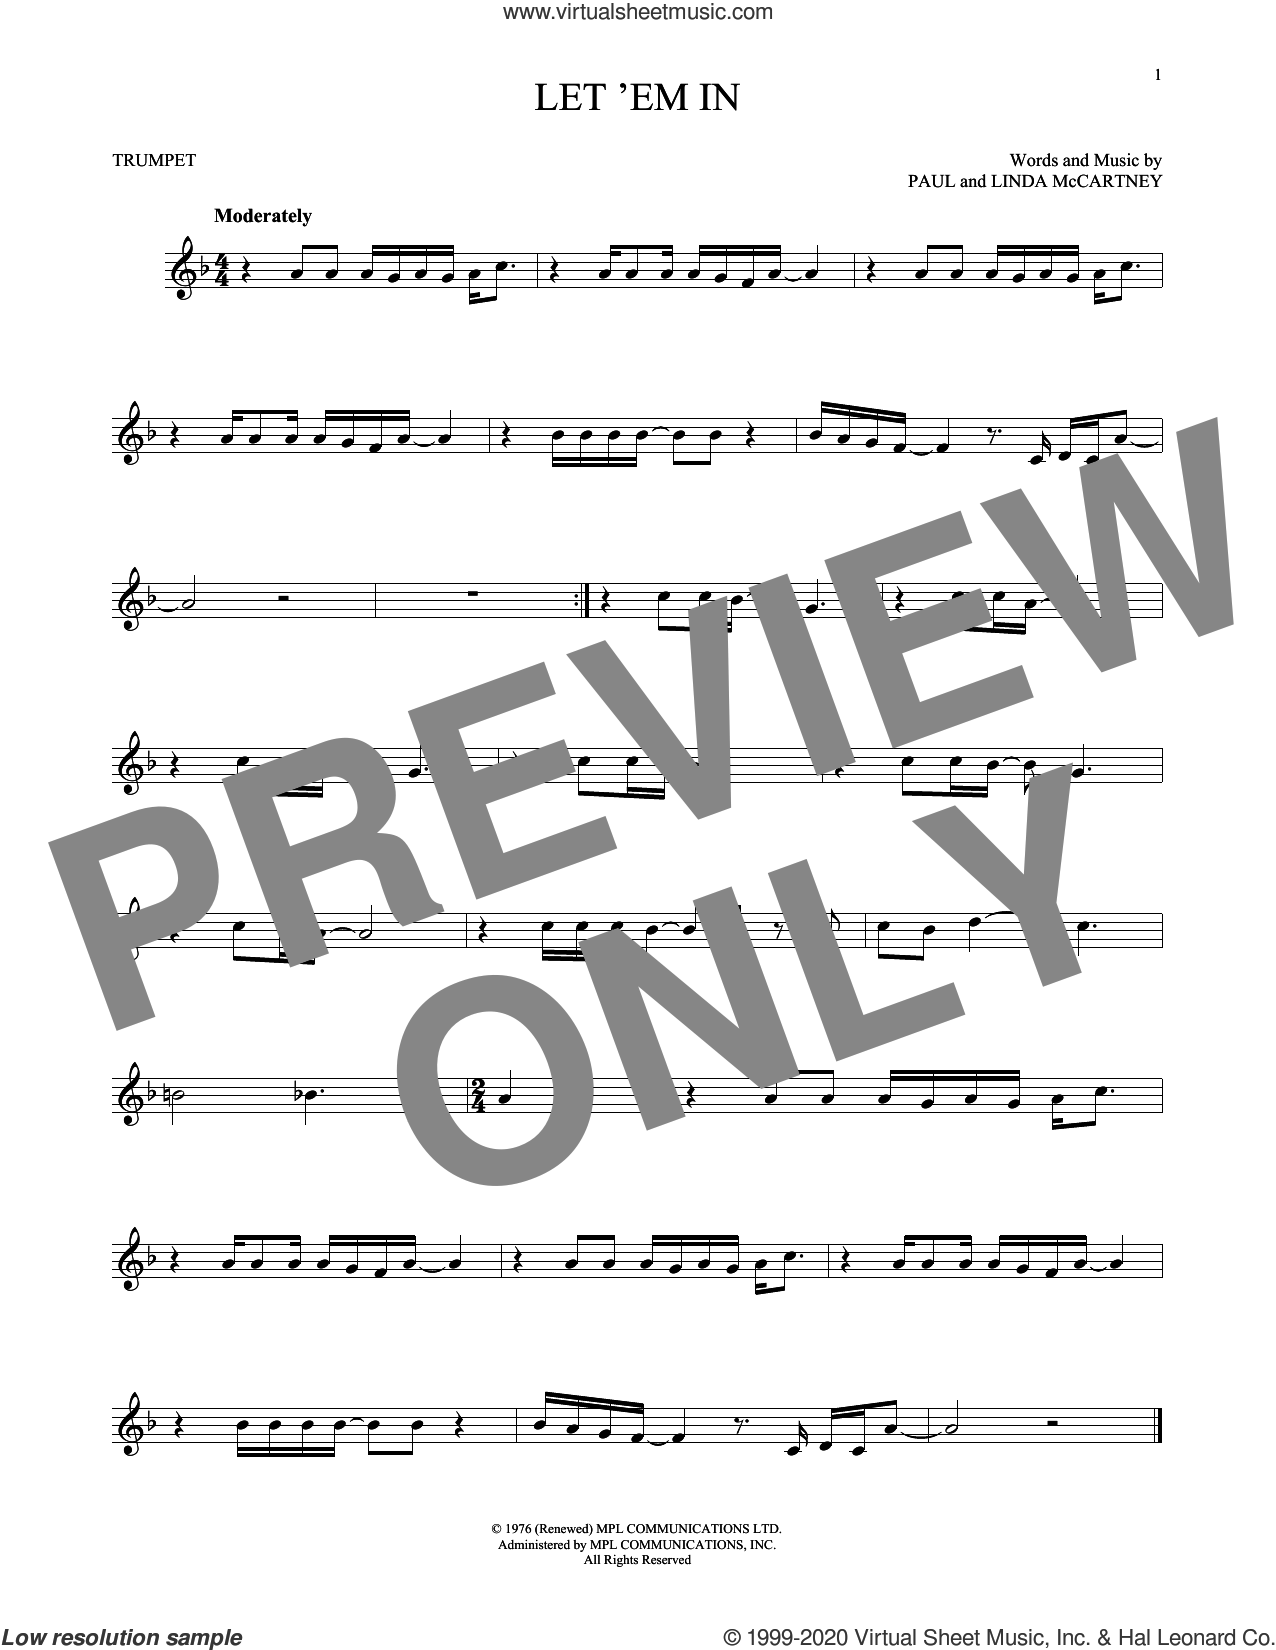 Let 'Em In sheet music for trumpet solo by Wings, Linda McCartney and Paul McCartney, intermediate skill level